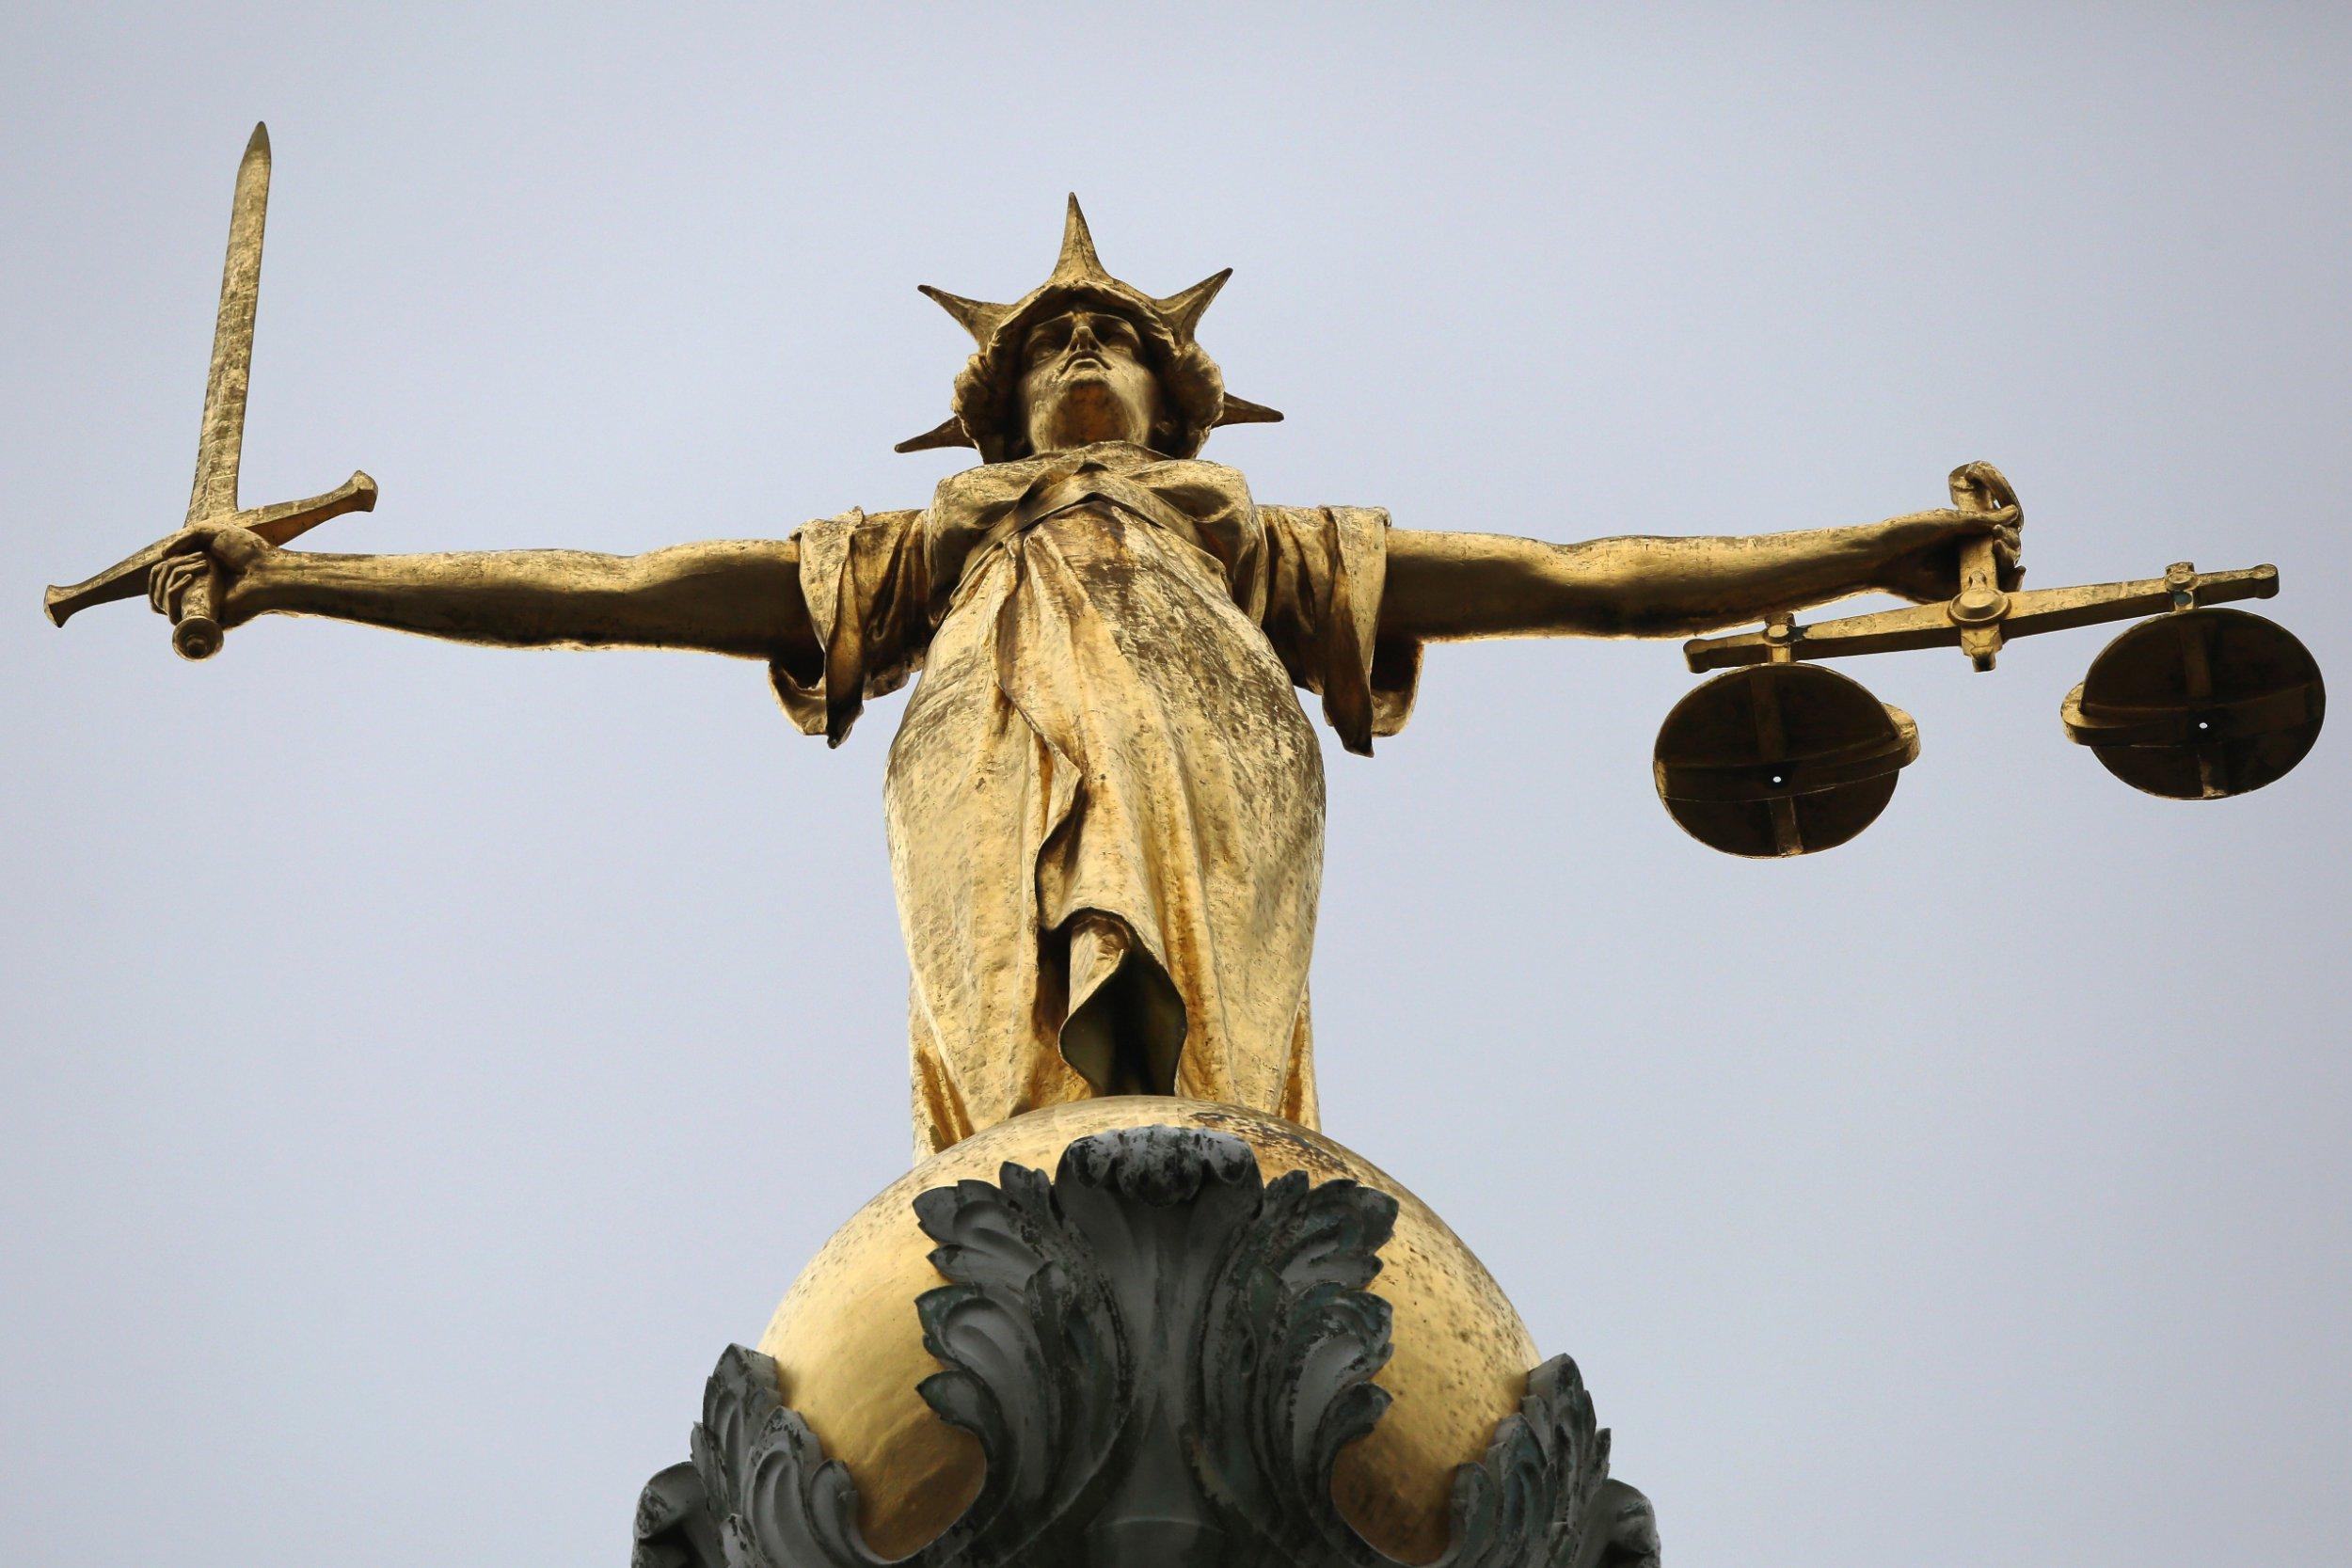 LONDON, ENGLAND - FEBRUARY 16: A statue of the scales of justice stands above the Old Bailey on February 16, 2015 in London, England. (Photo by Dan Kitwood/Getty Images)